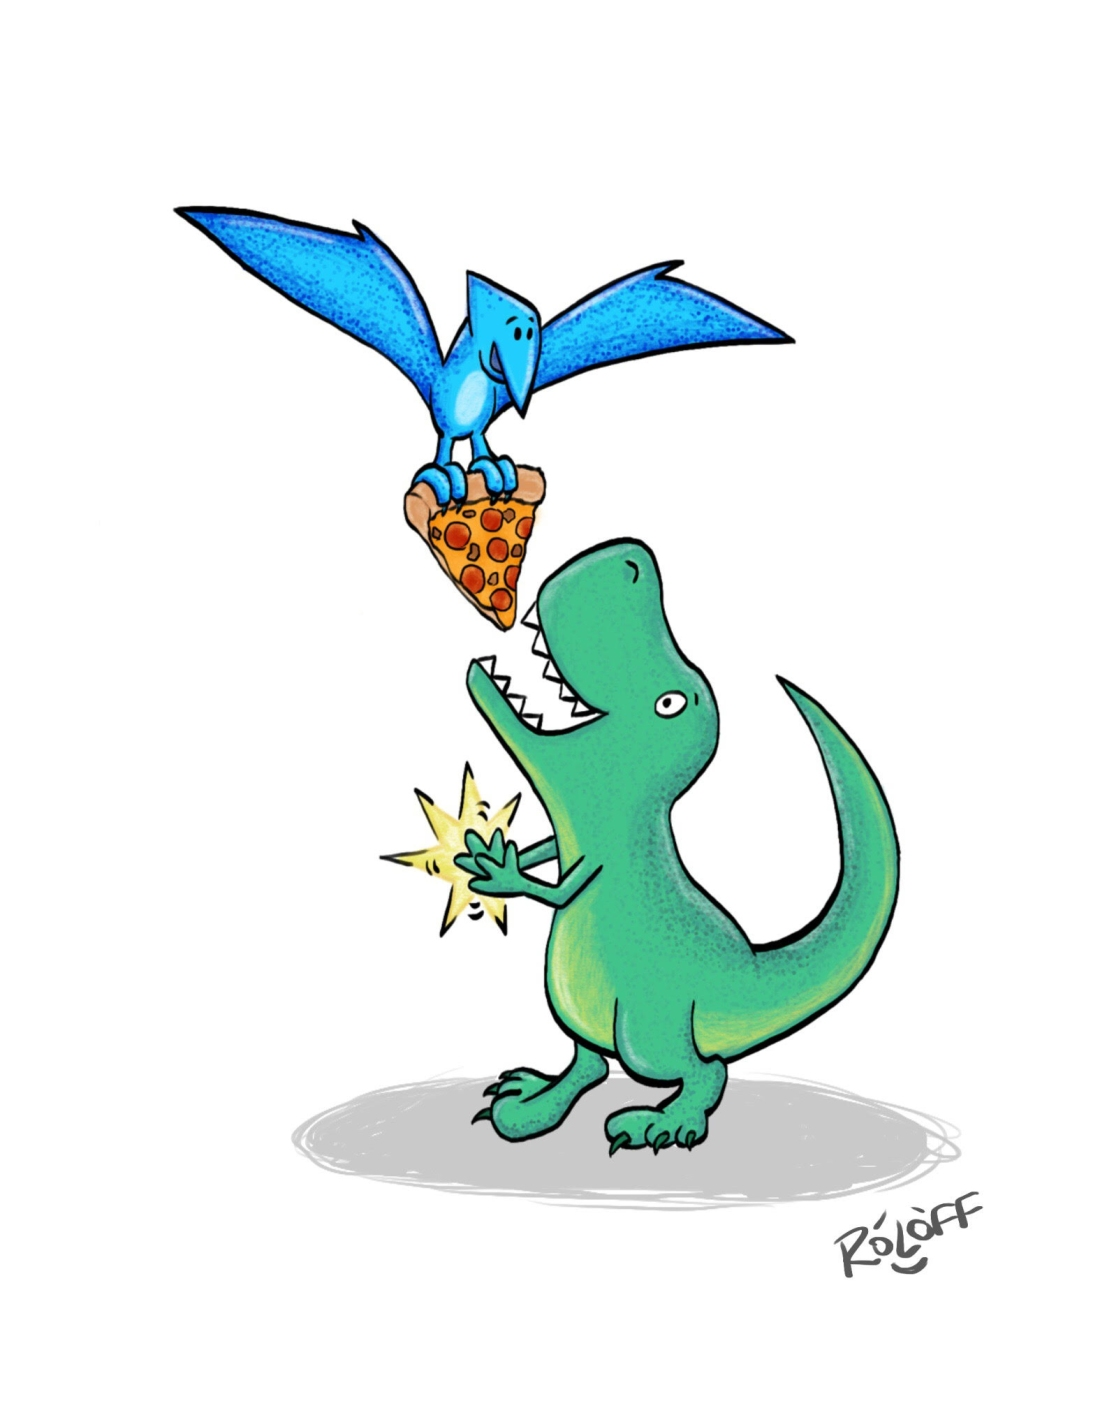 Dino Pizza Party by Sheri Roloff